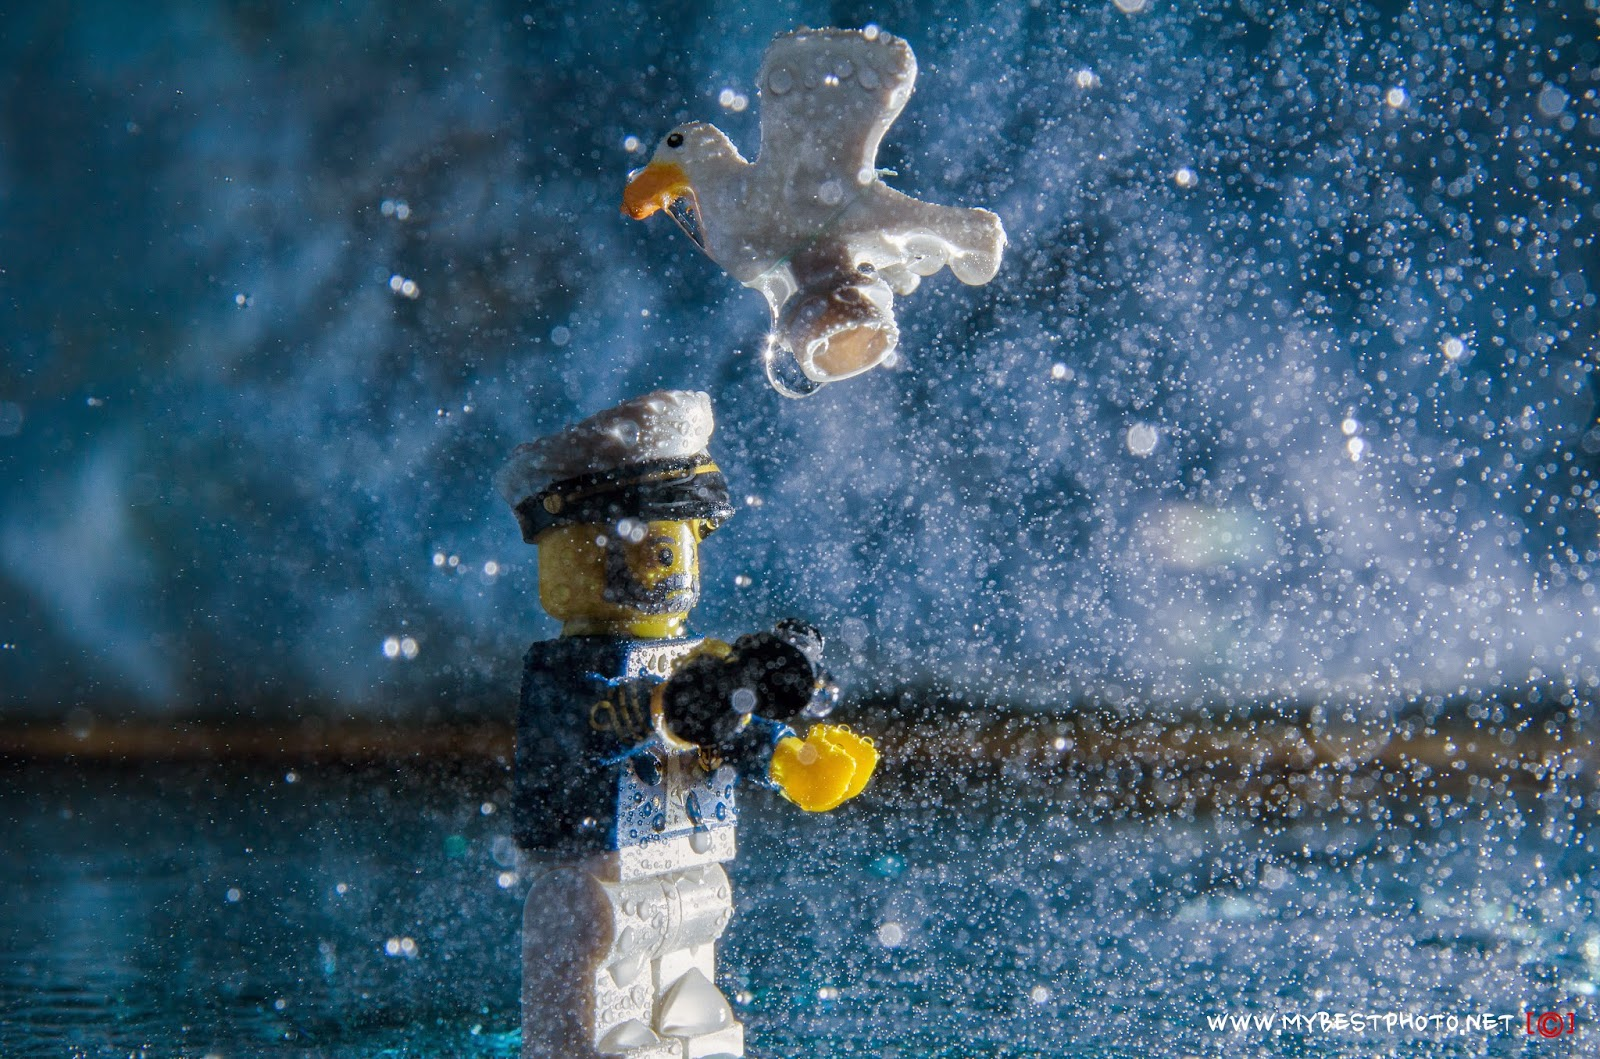 Lego Minifigure Series 10 Sea Captain - Wallpaper